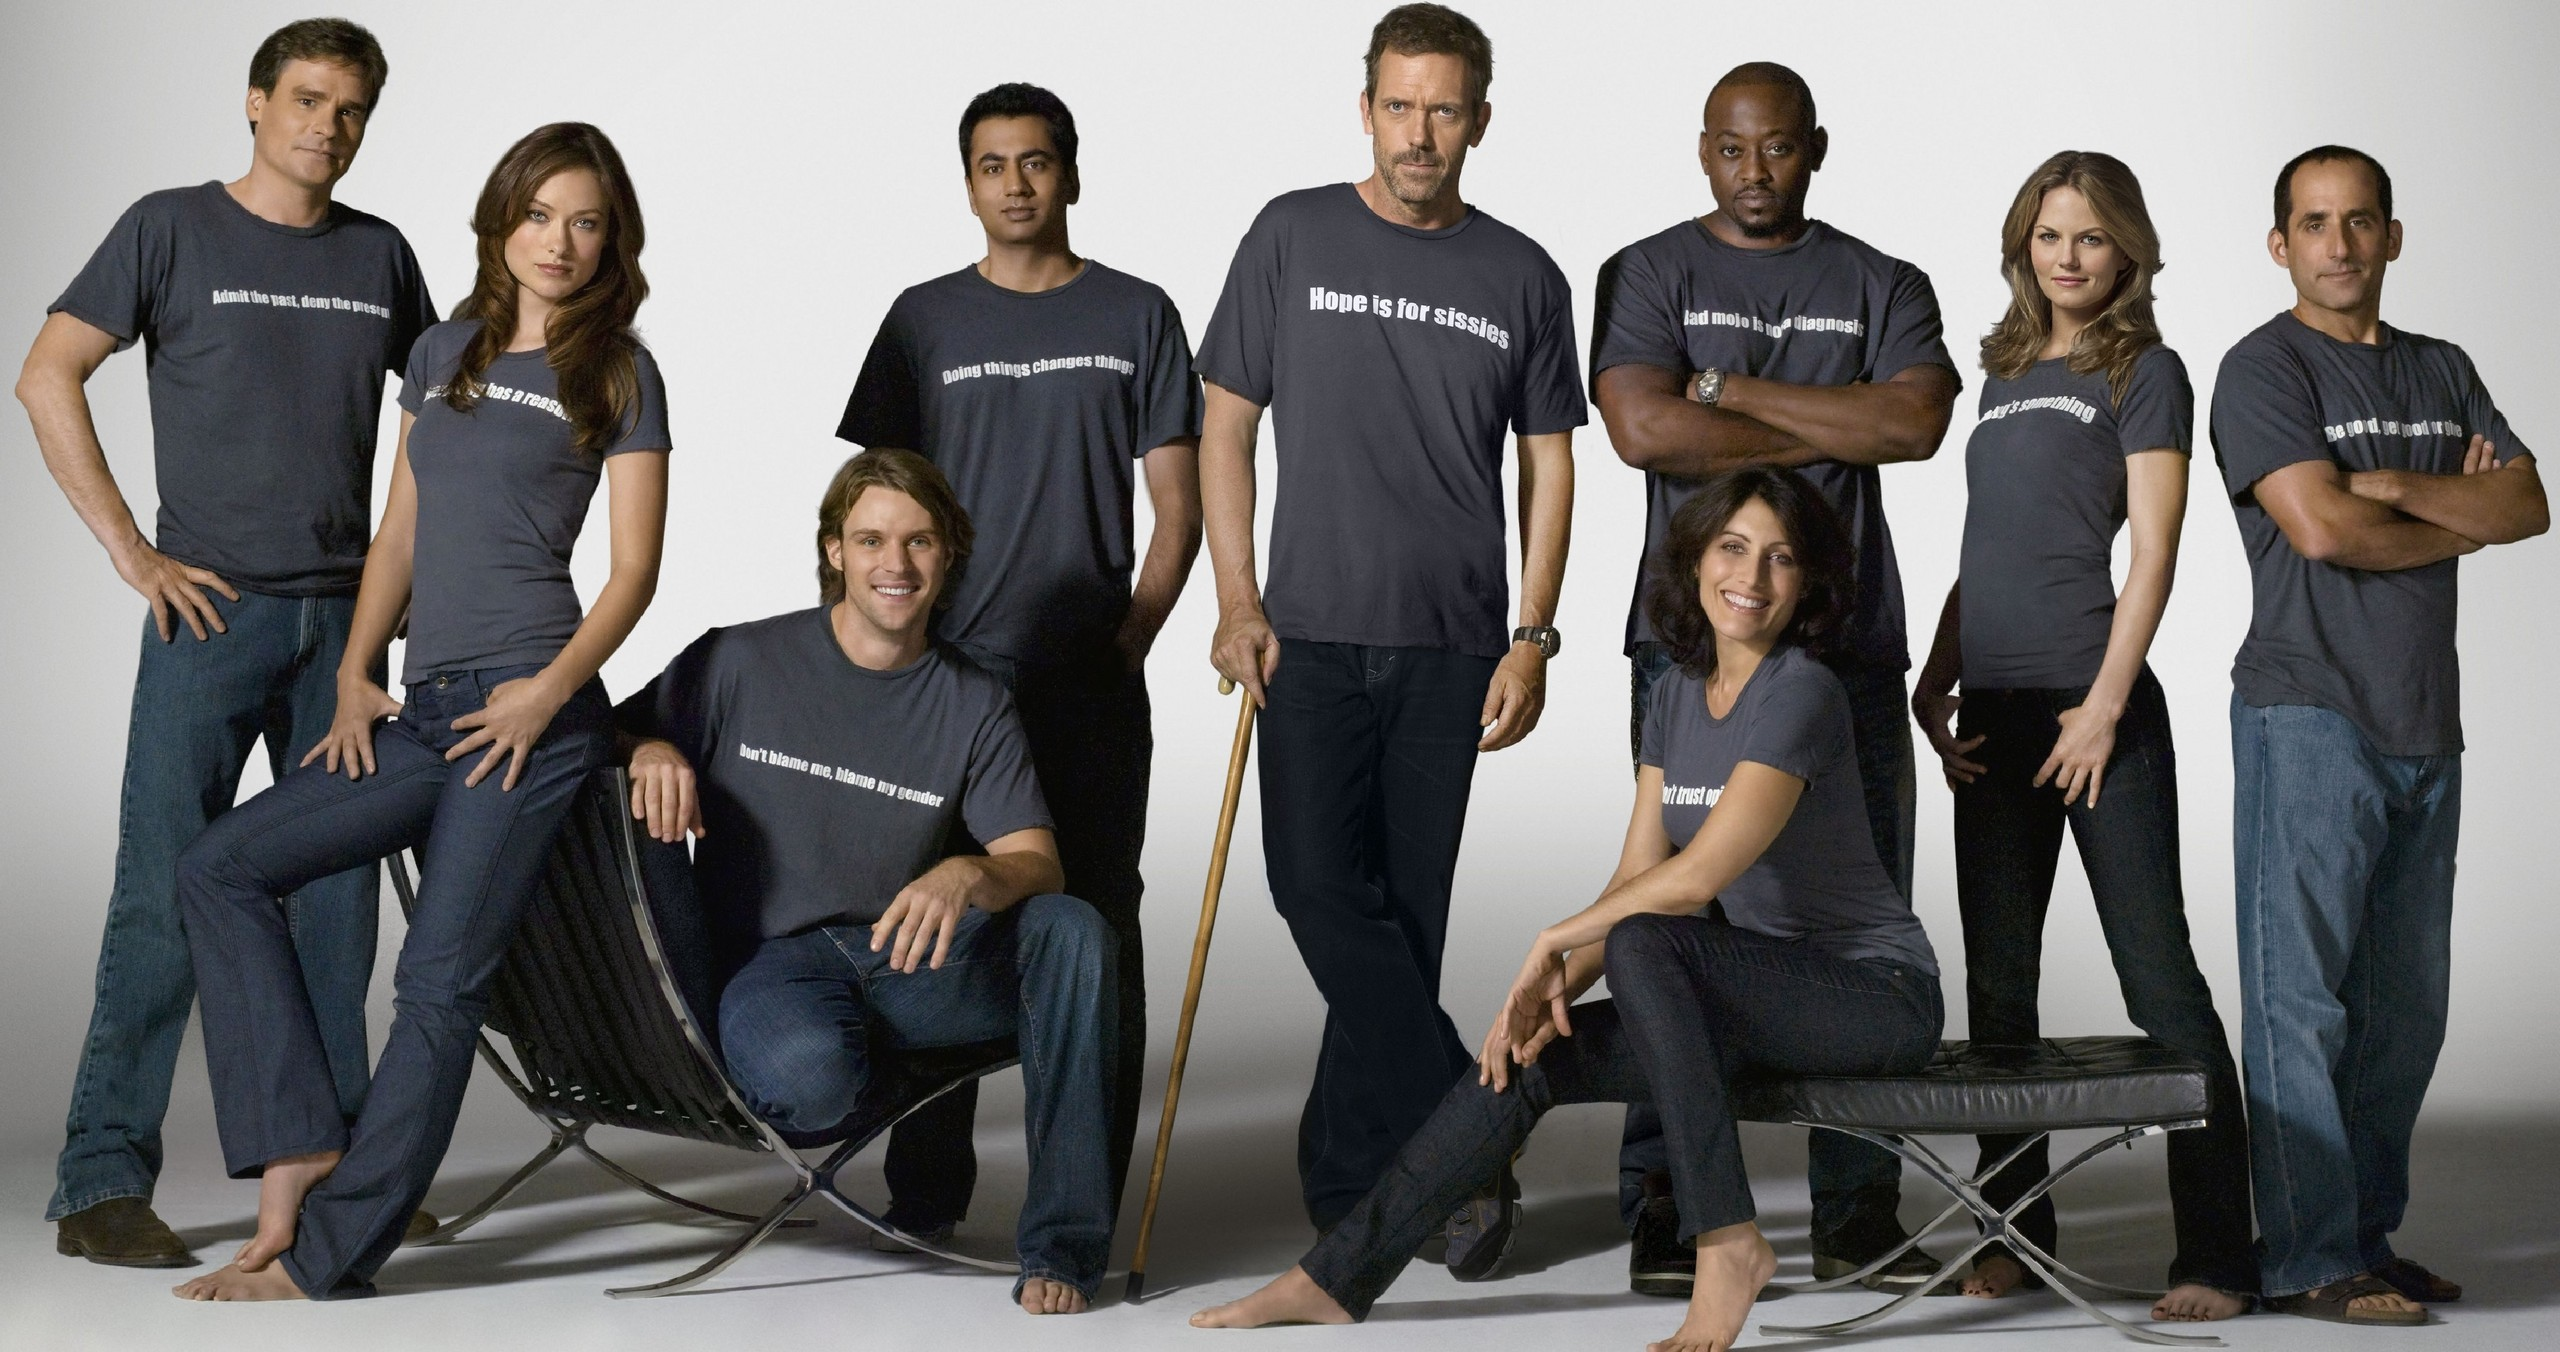 House MD Cast wallpaper